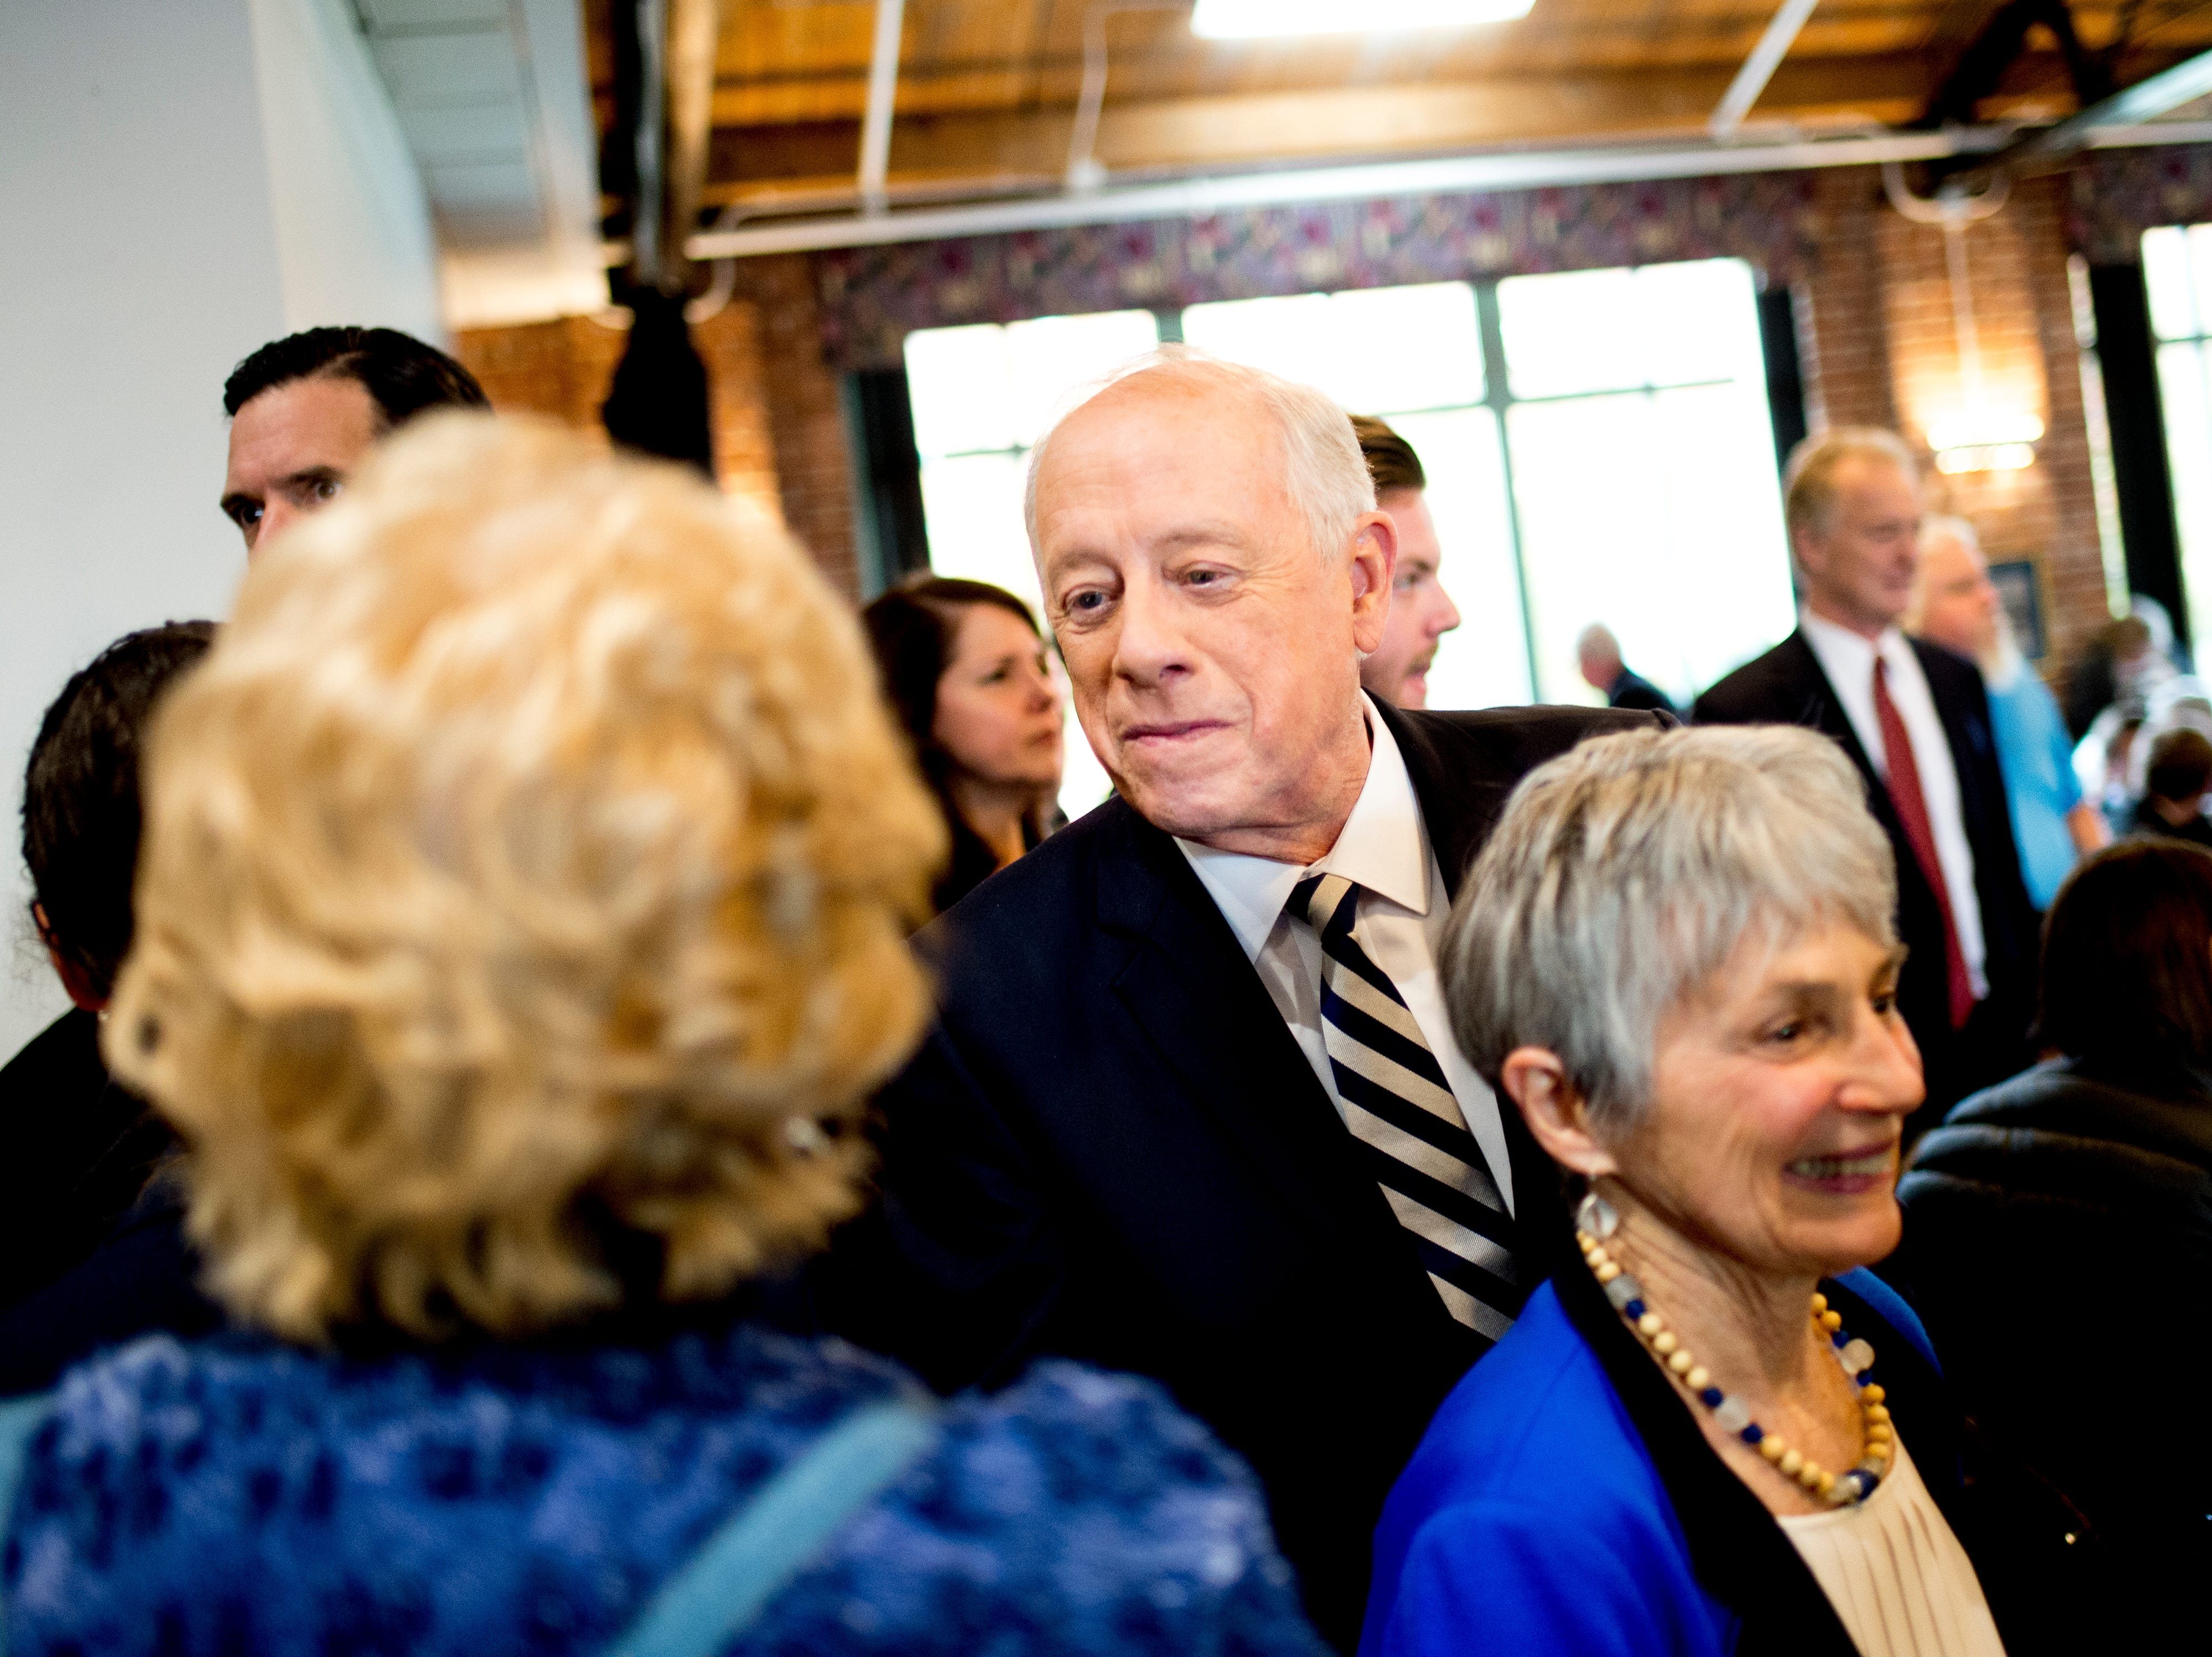 """Former Governor Phil Bredesen greets supporters during an """"Doing Better Together"""" Interfaith Lunch at the Bessie Smith Cultural Center in Chattanooga, Tennessee on Sunday, November 4, 2018. Former Governor Phil Bredesen, candidate for U.S. Senate, hosted the event to discuss the future of Tennessee and America."""